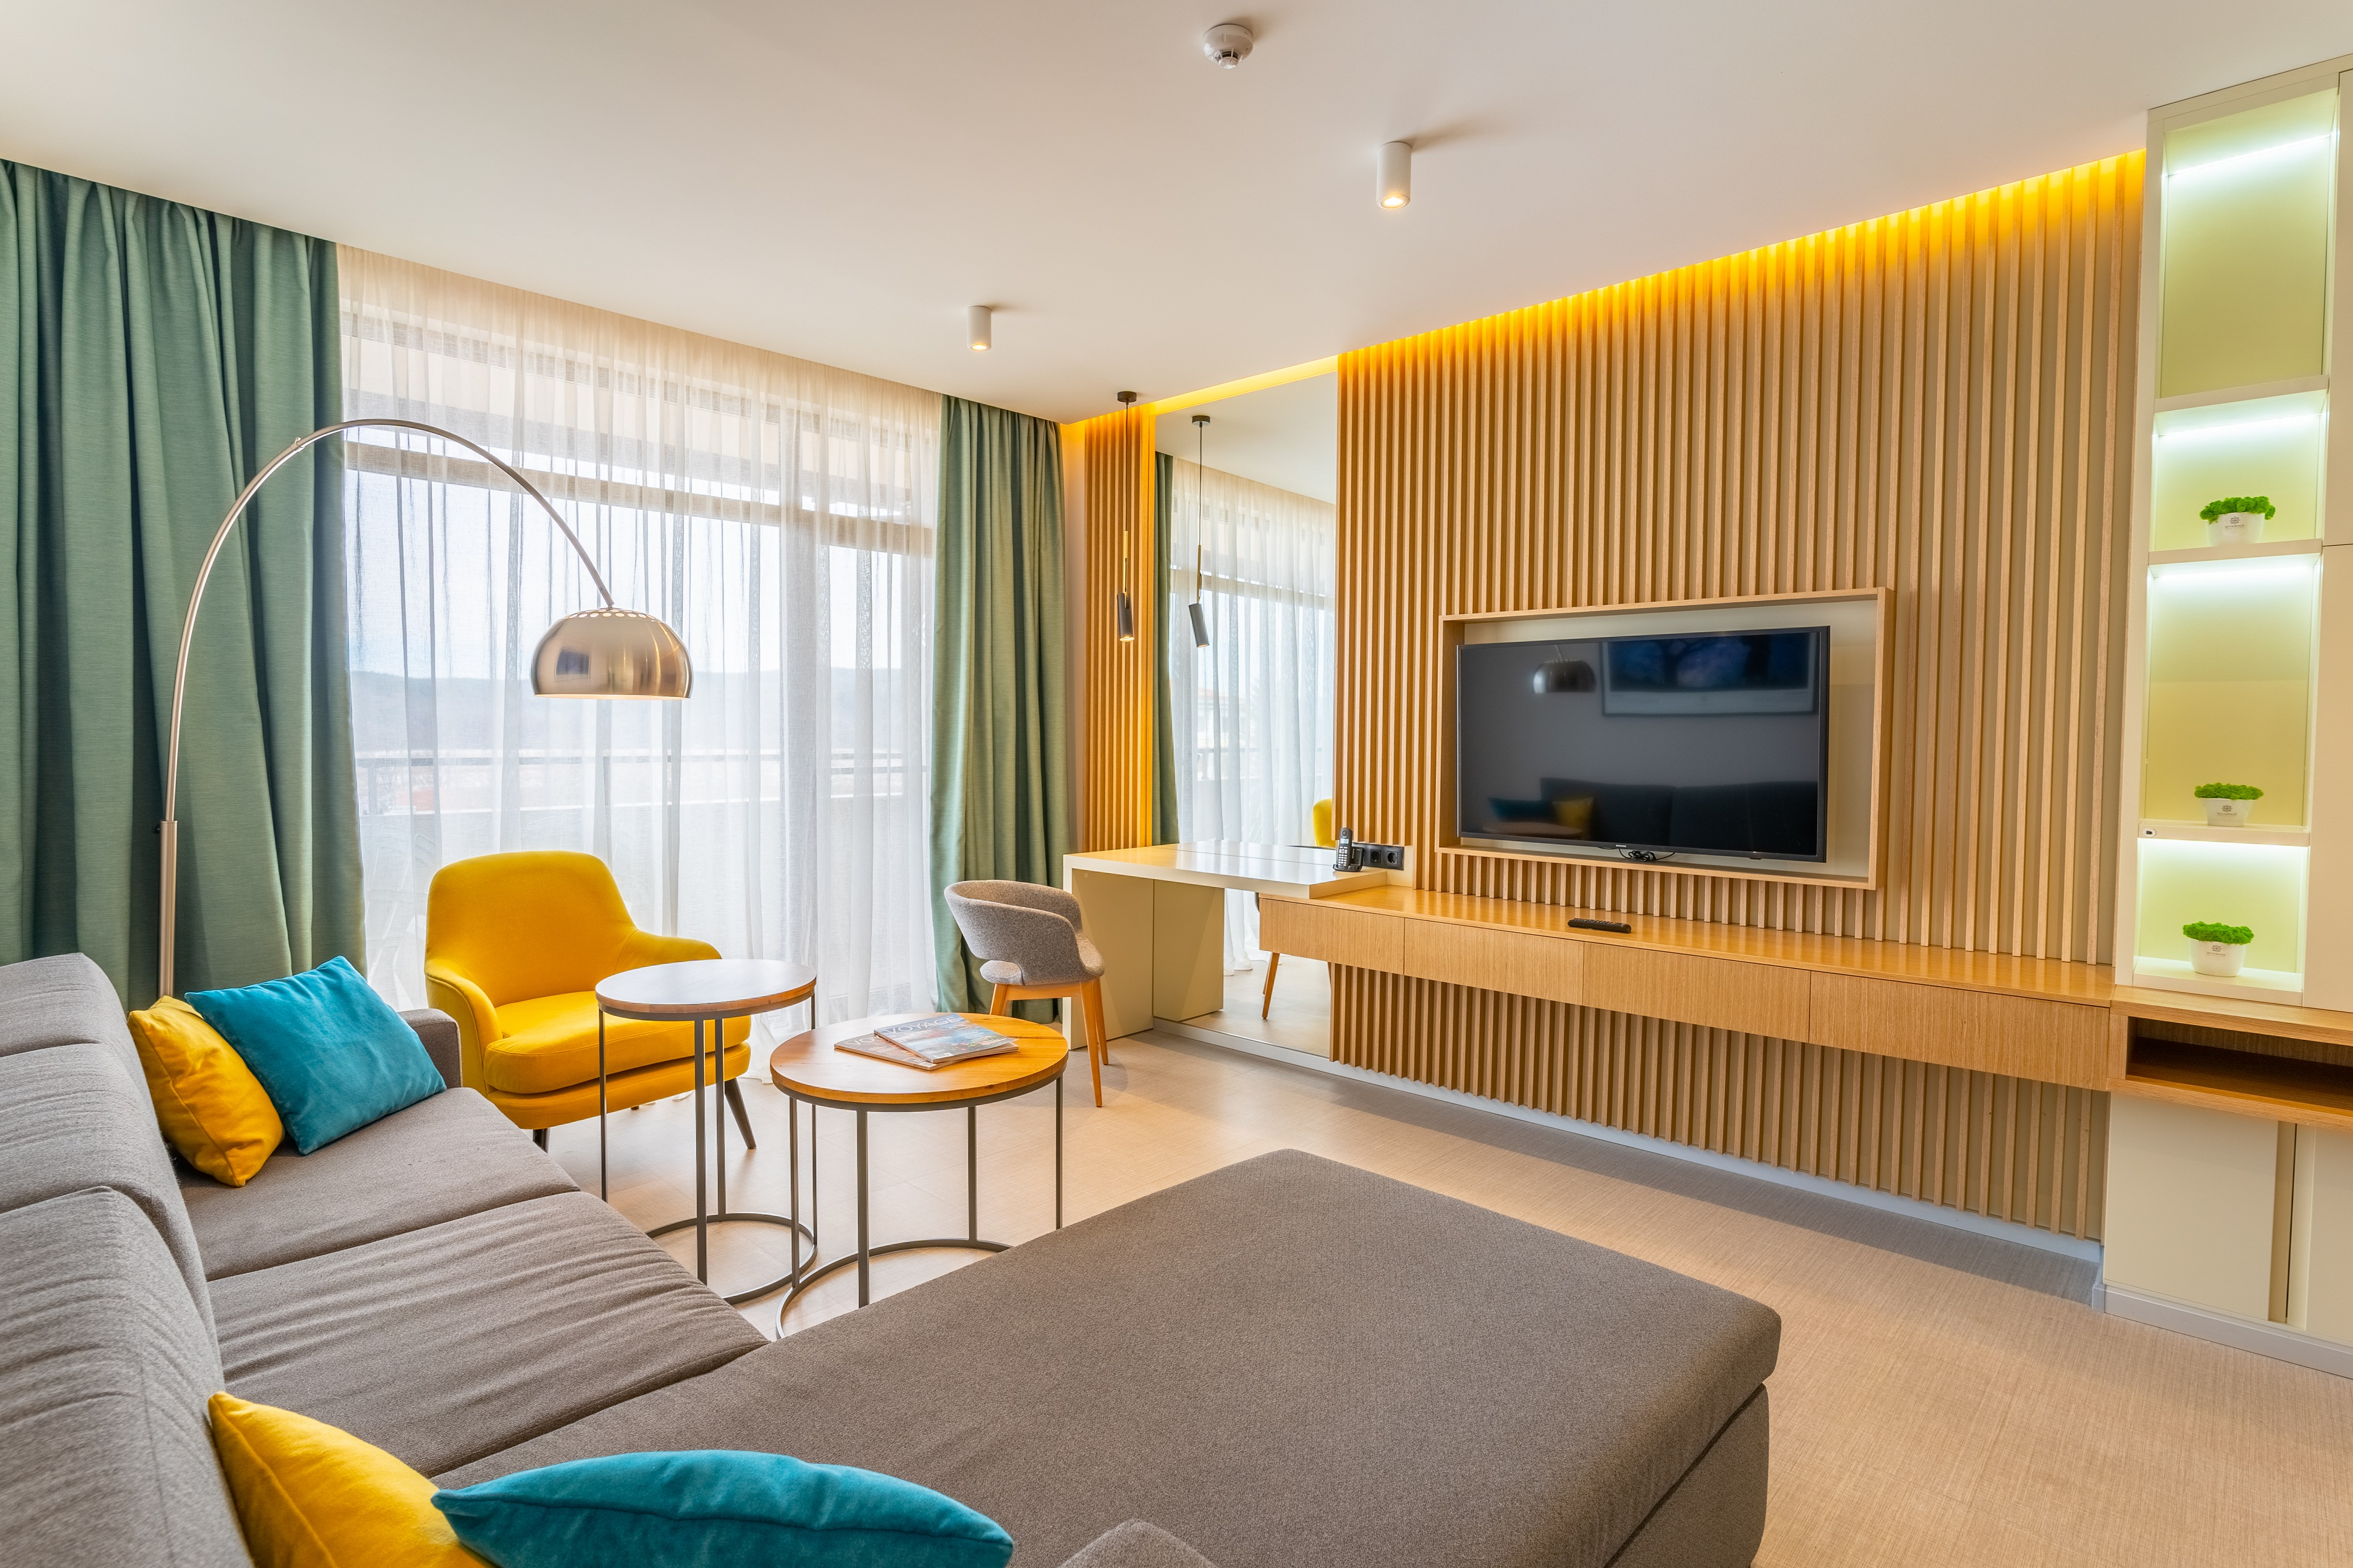 Sevtopolis_Medical_and_SPA_Hotel_Apartment_Living_room_2_-_rs.jpg